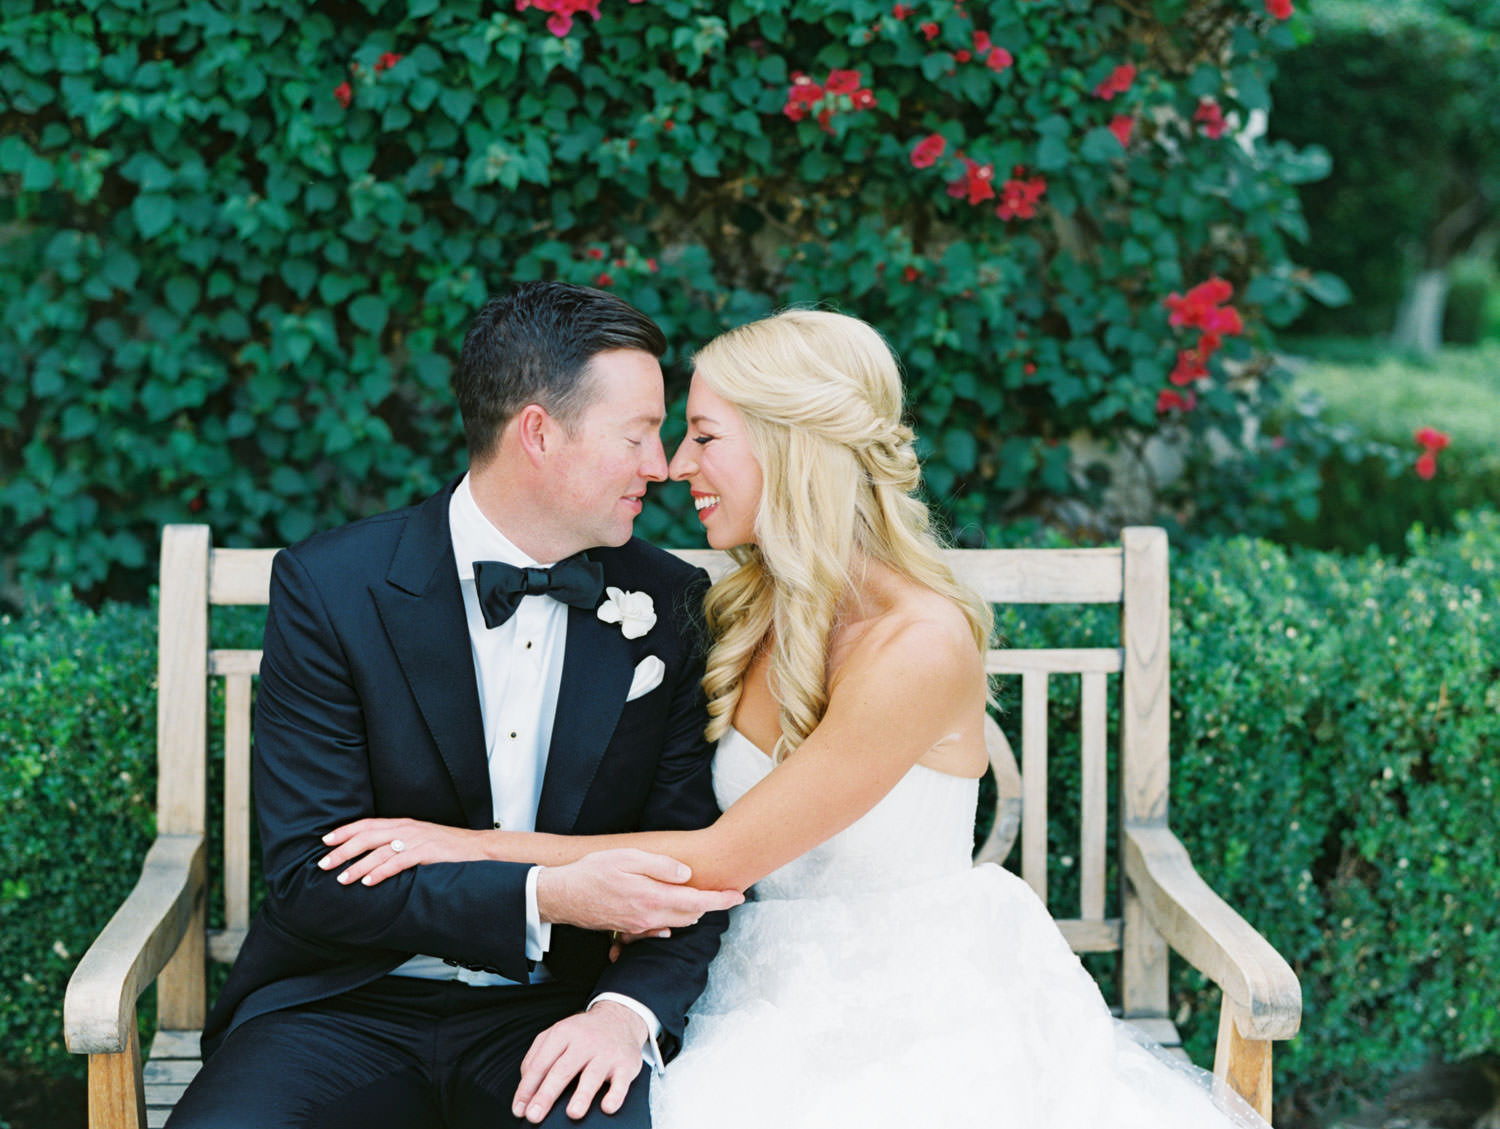 Bride and groom smiling together. Bride in lace Watters sweetheart gown with her hair half up and curled. Groom in classic black tuxedo with single white rose for boutonniere. Miramonte Resort wedding. Film photography by Cavin Elizabeth.